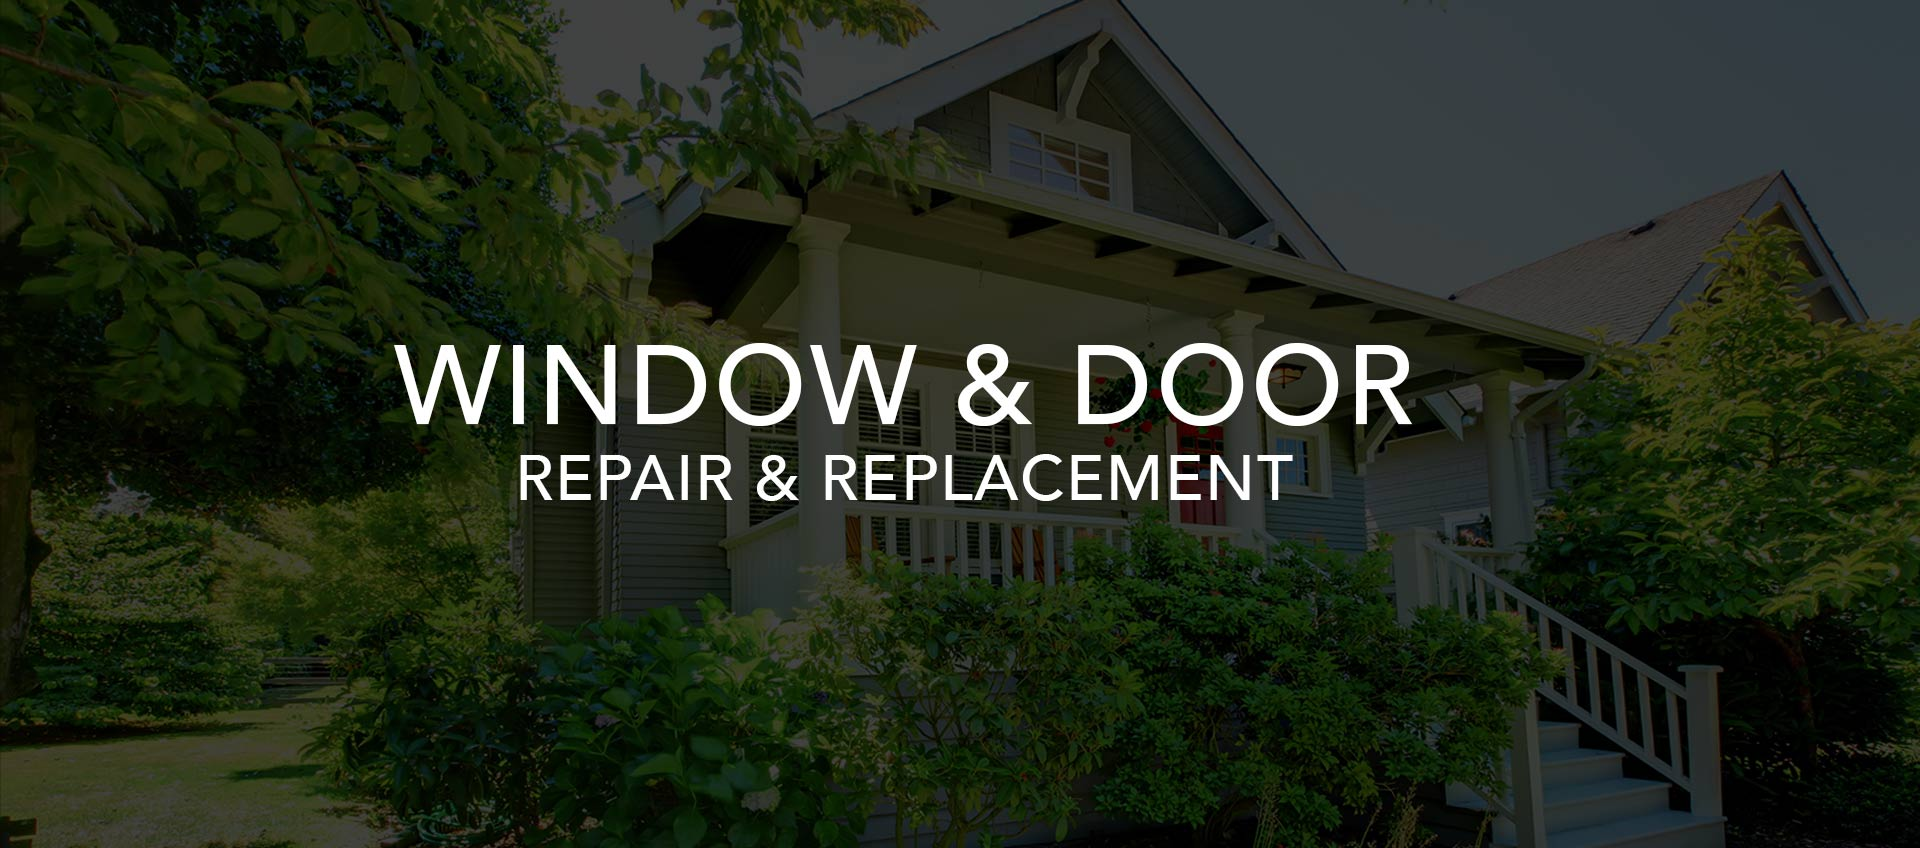 Windows and Door Replacement and Repair